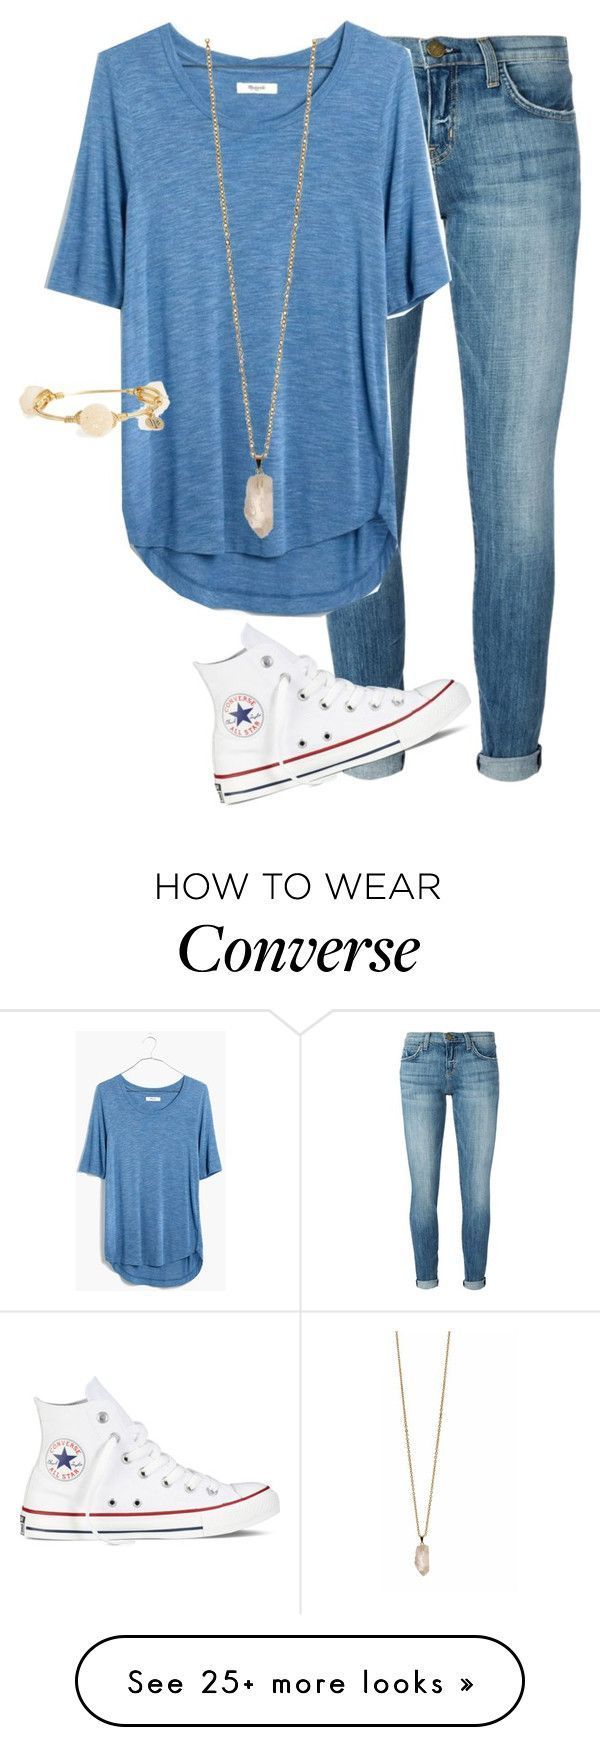 """Untitled #96"" by preppy123 on Polyvore featuring Current/Elliott, Madewell, Converse, Zoya and Bourbon and Boweties"